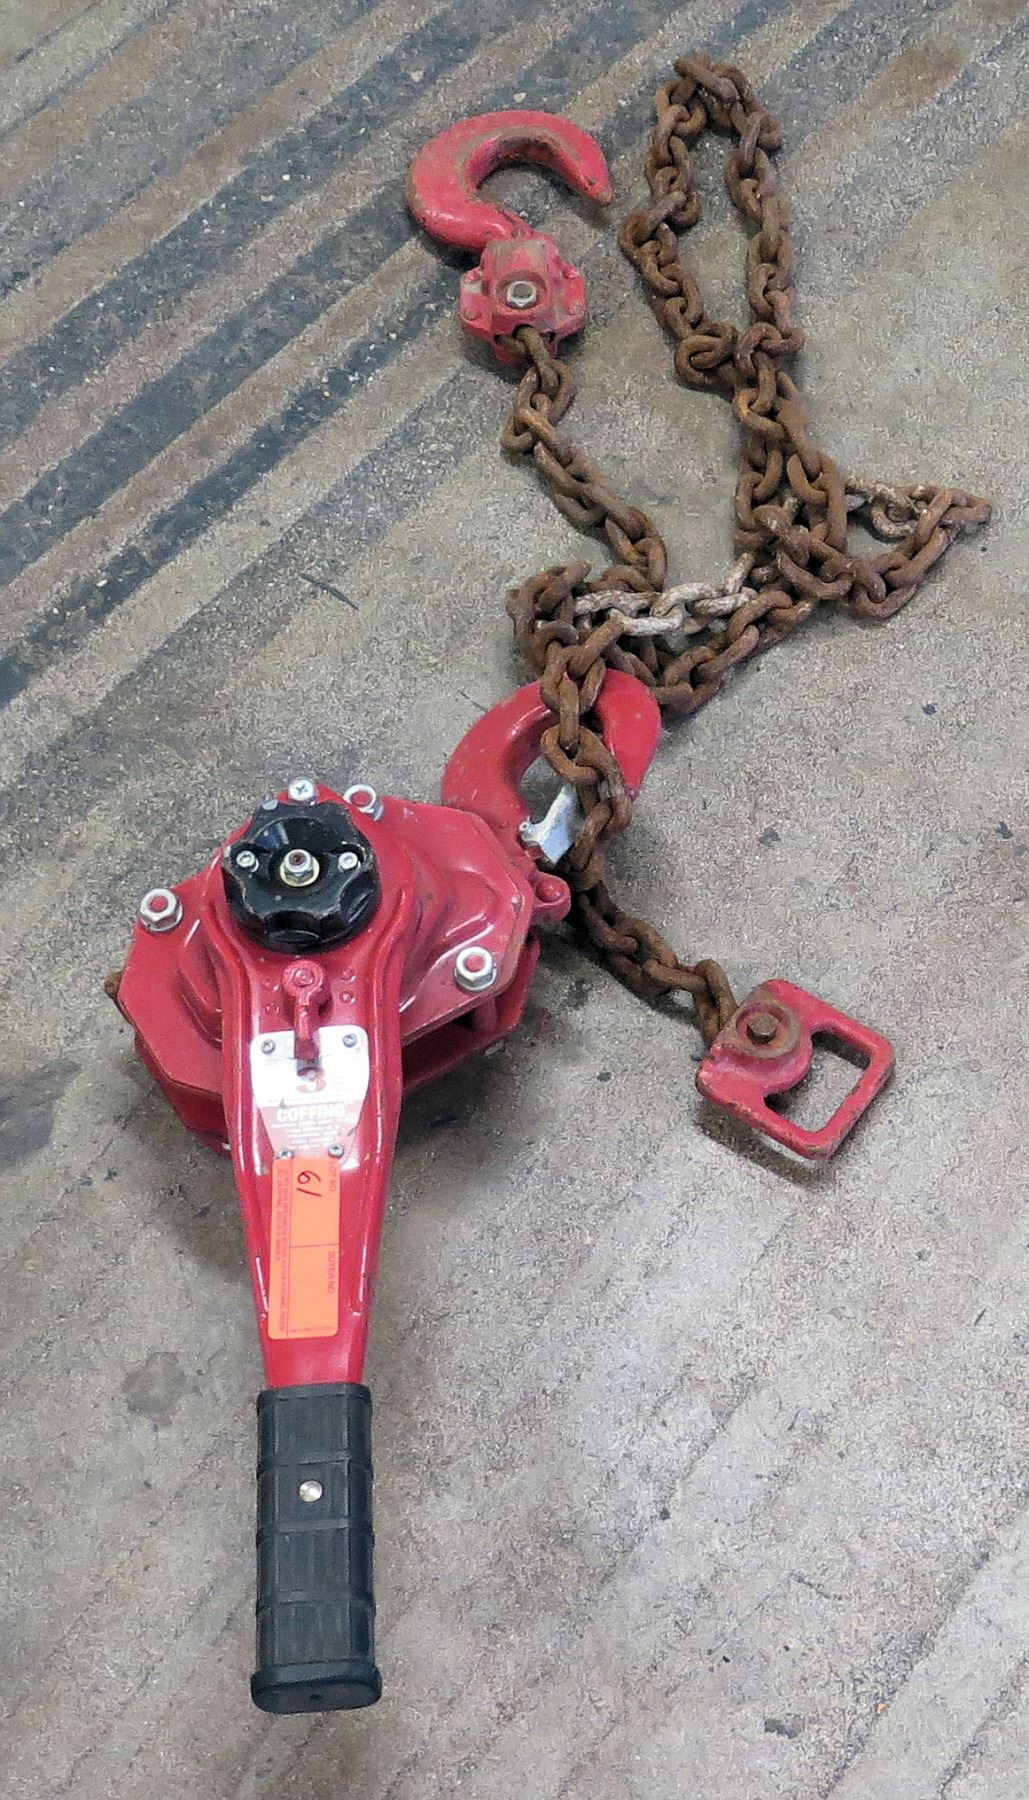 medium resolution of image 1 coffing 3 ton chain hoist red